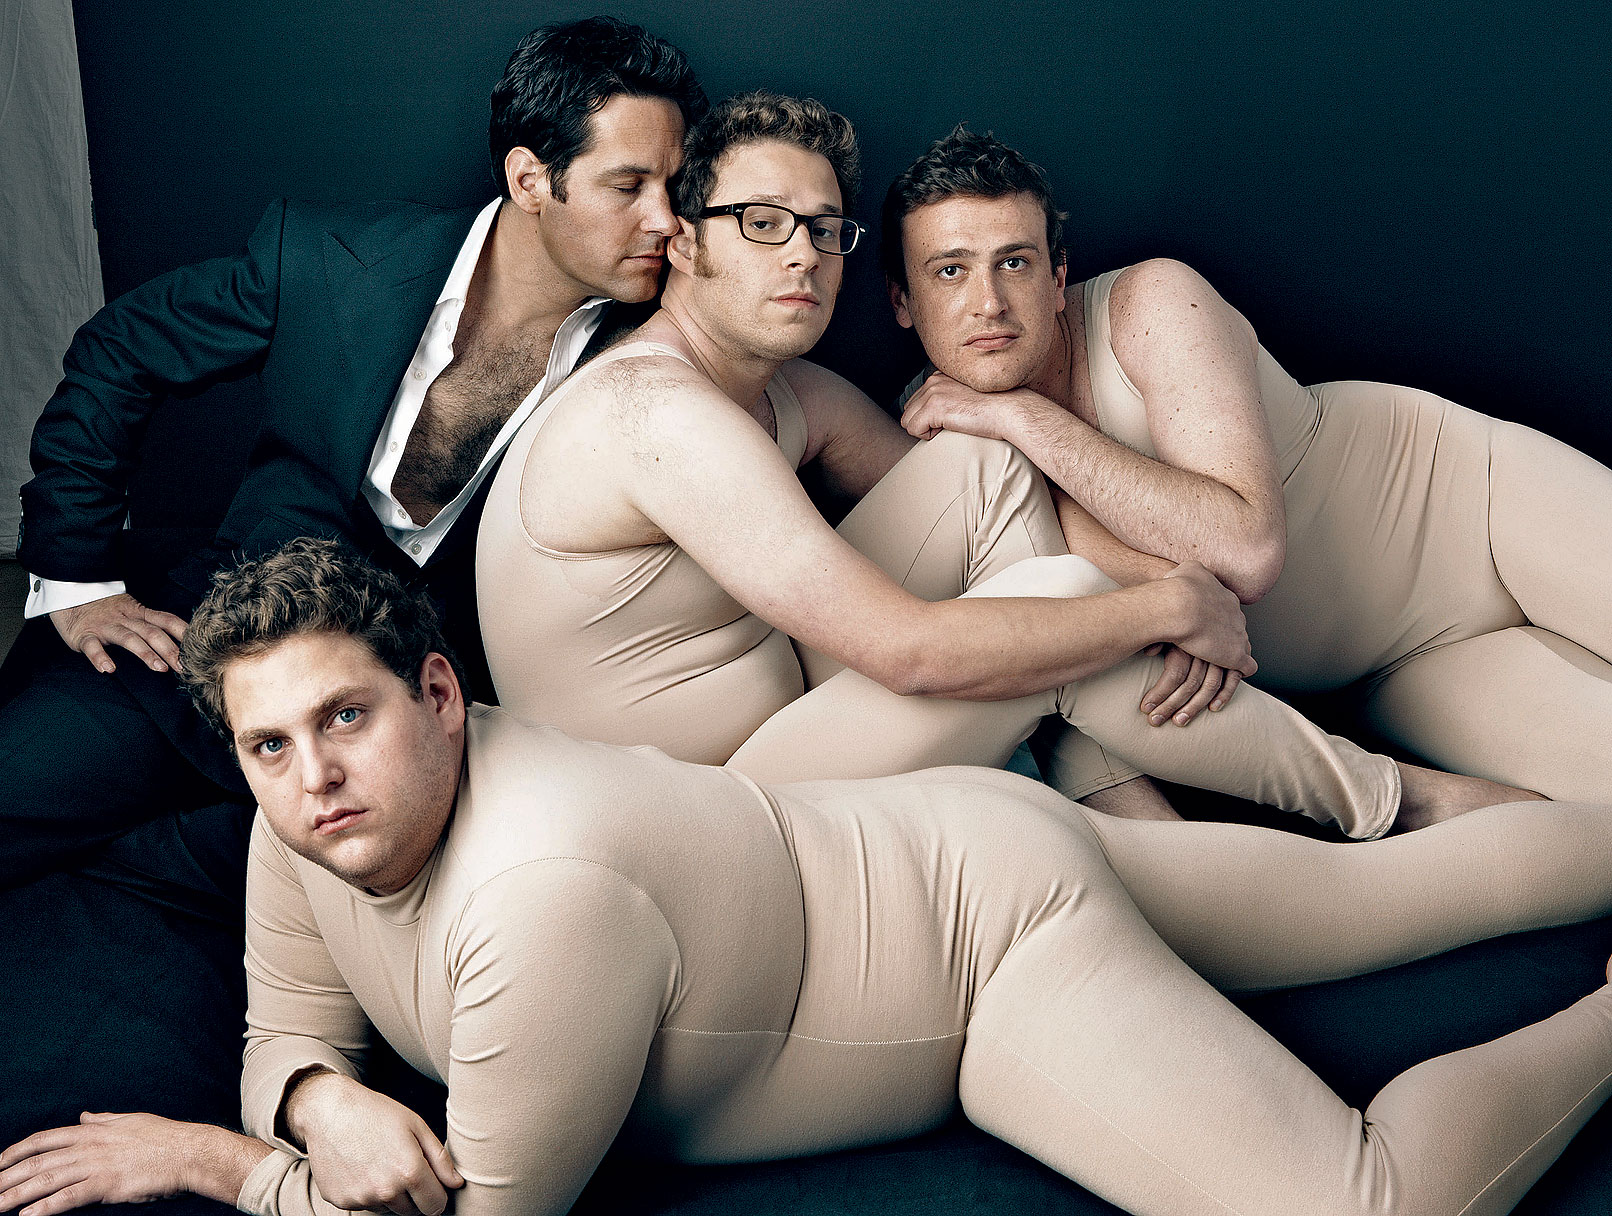 'Vanity Fair' Covers Laughs and Man-Love